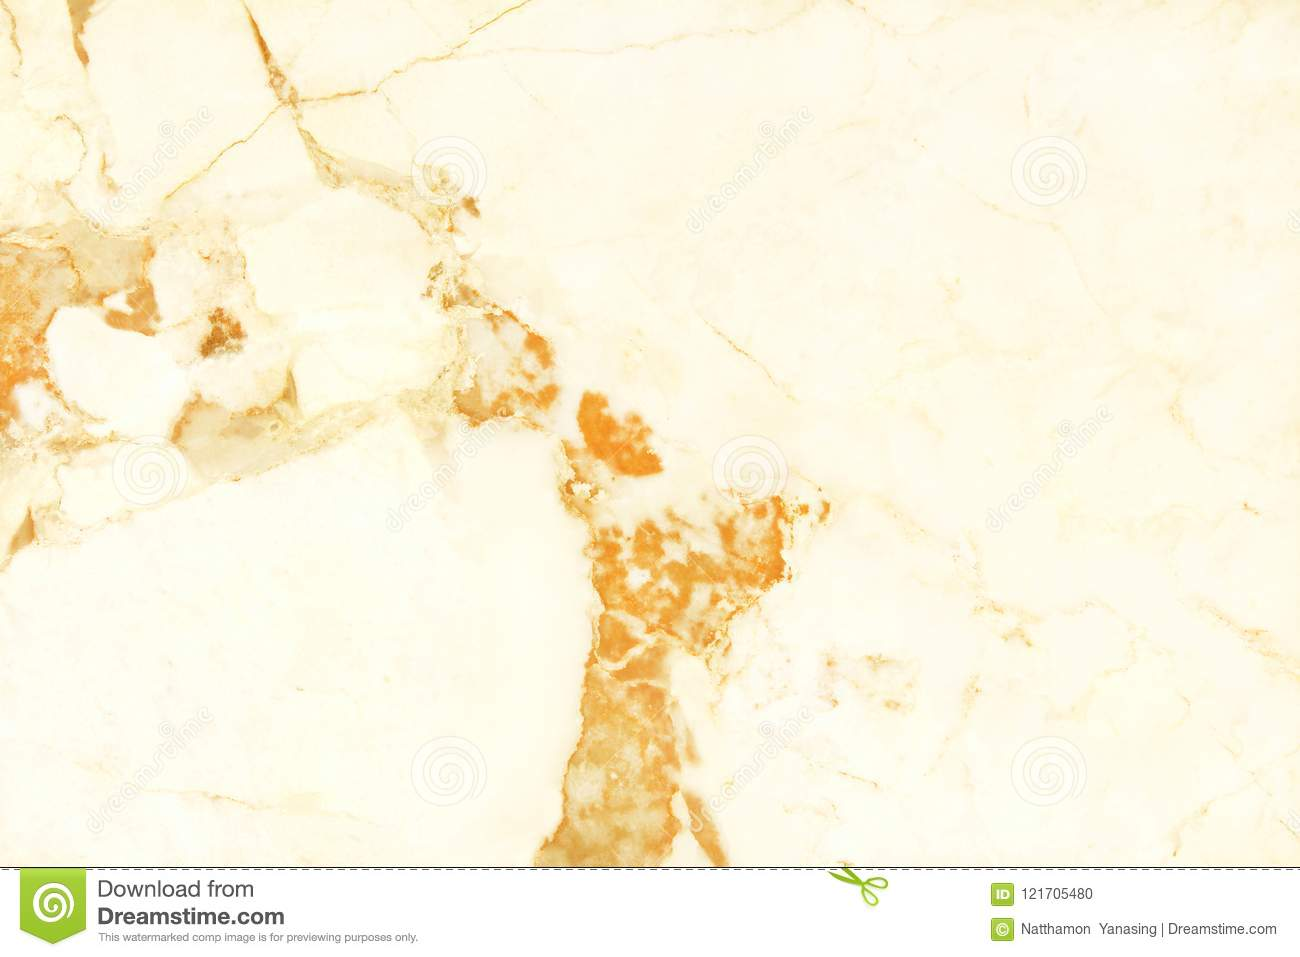 Gold White Marble Wall Texture For Background And Design Art Work Seamless Pattern Of Tile Stone With Bright Luxury Stock Photo Image Of Light Decorative 121705480